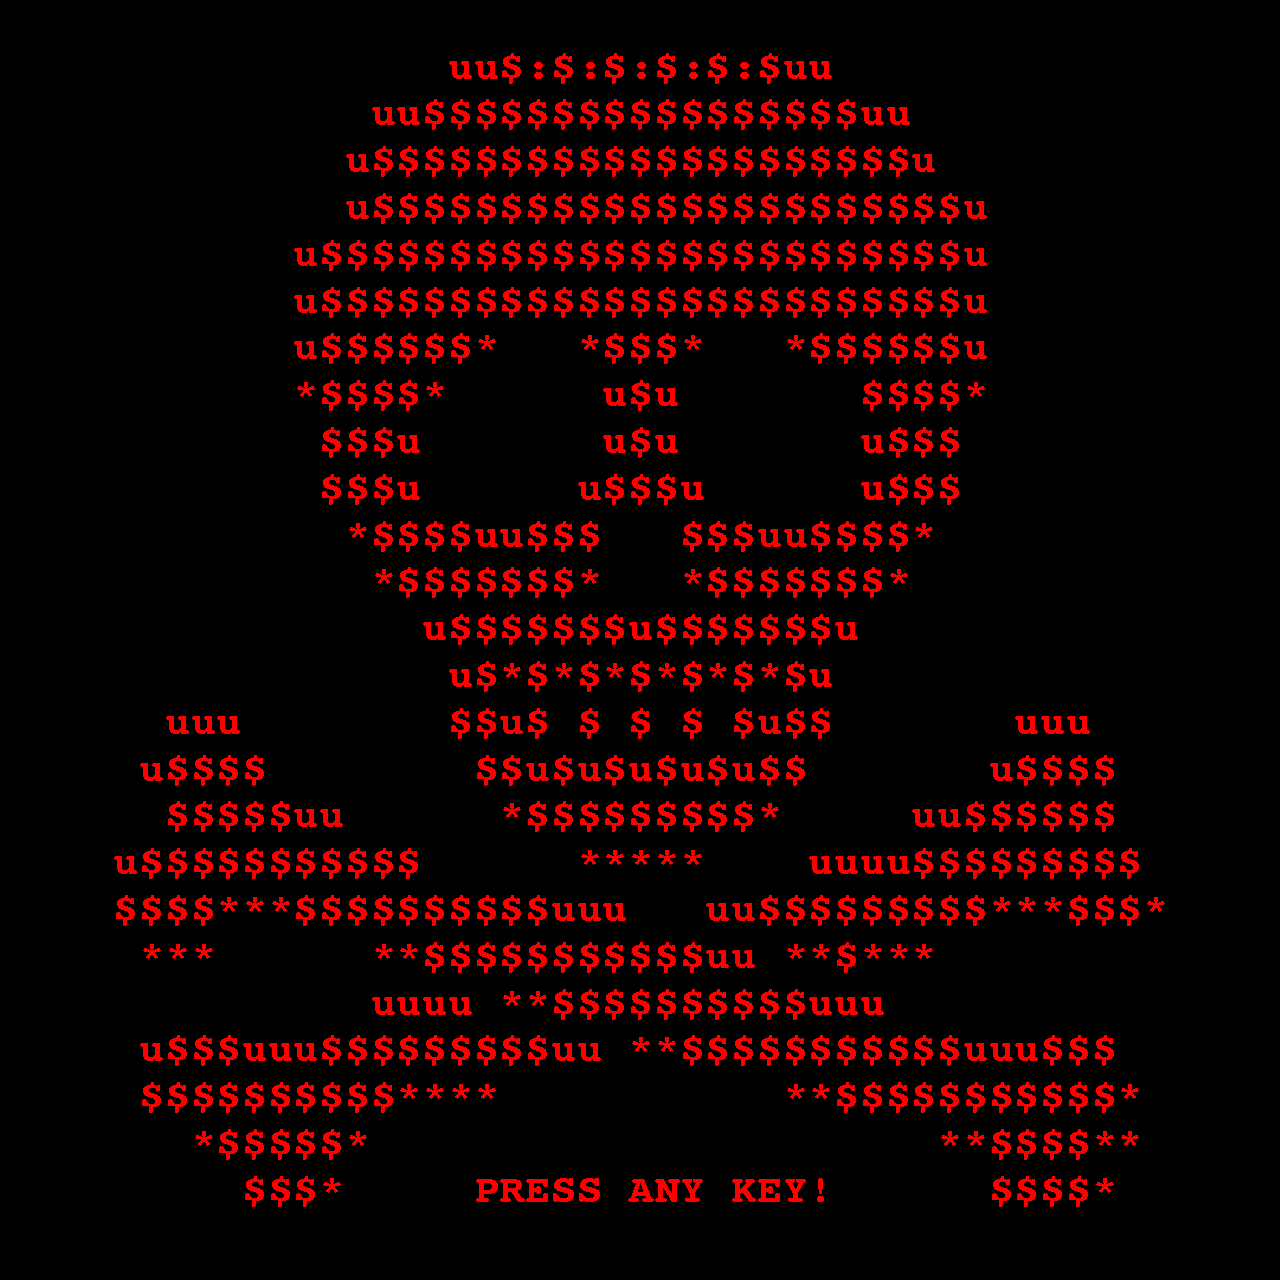 Petya ransomware eats your hard drives